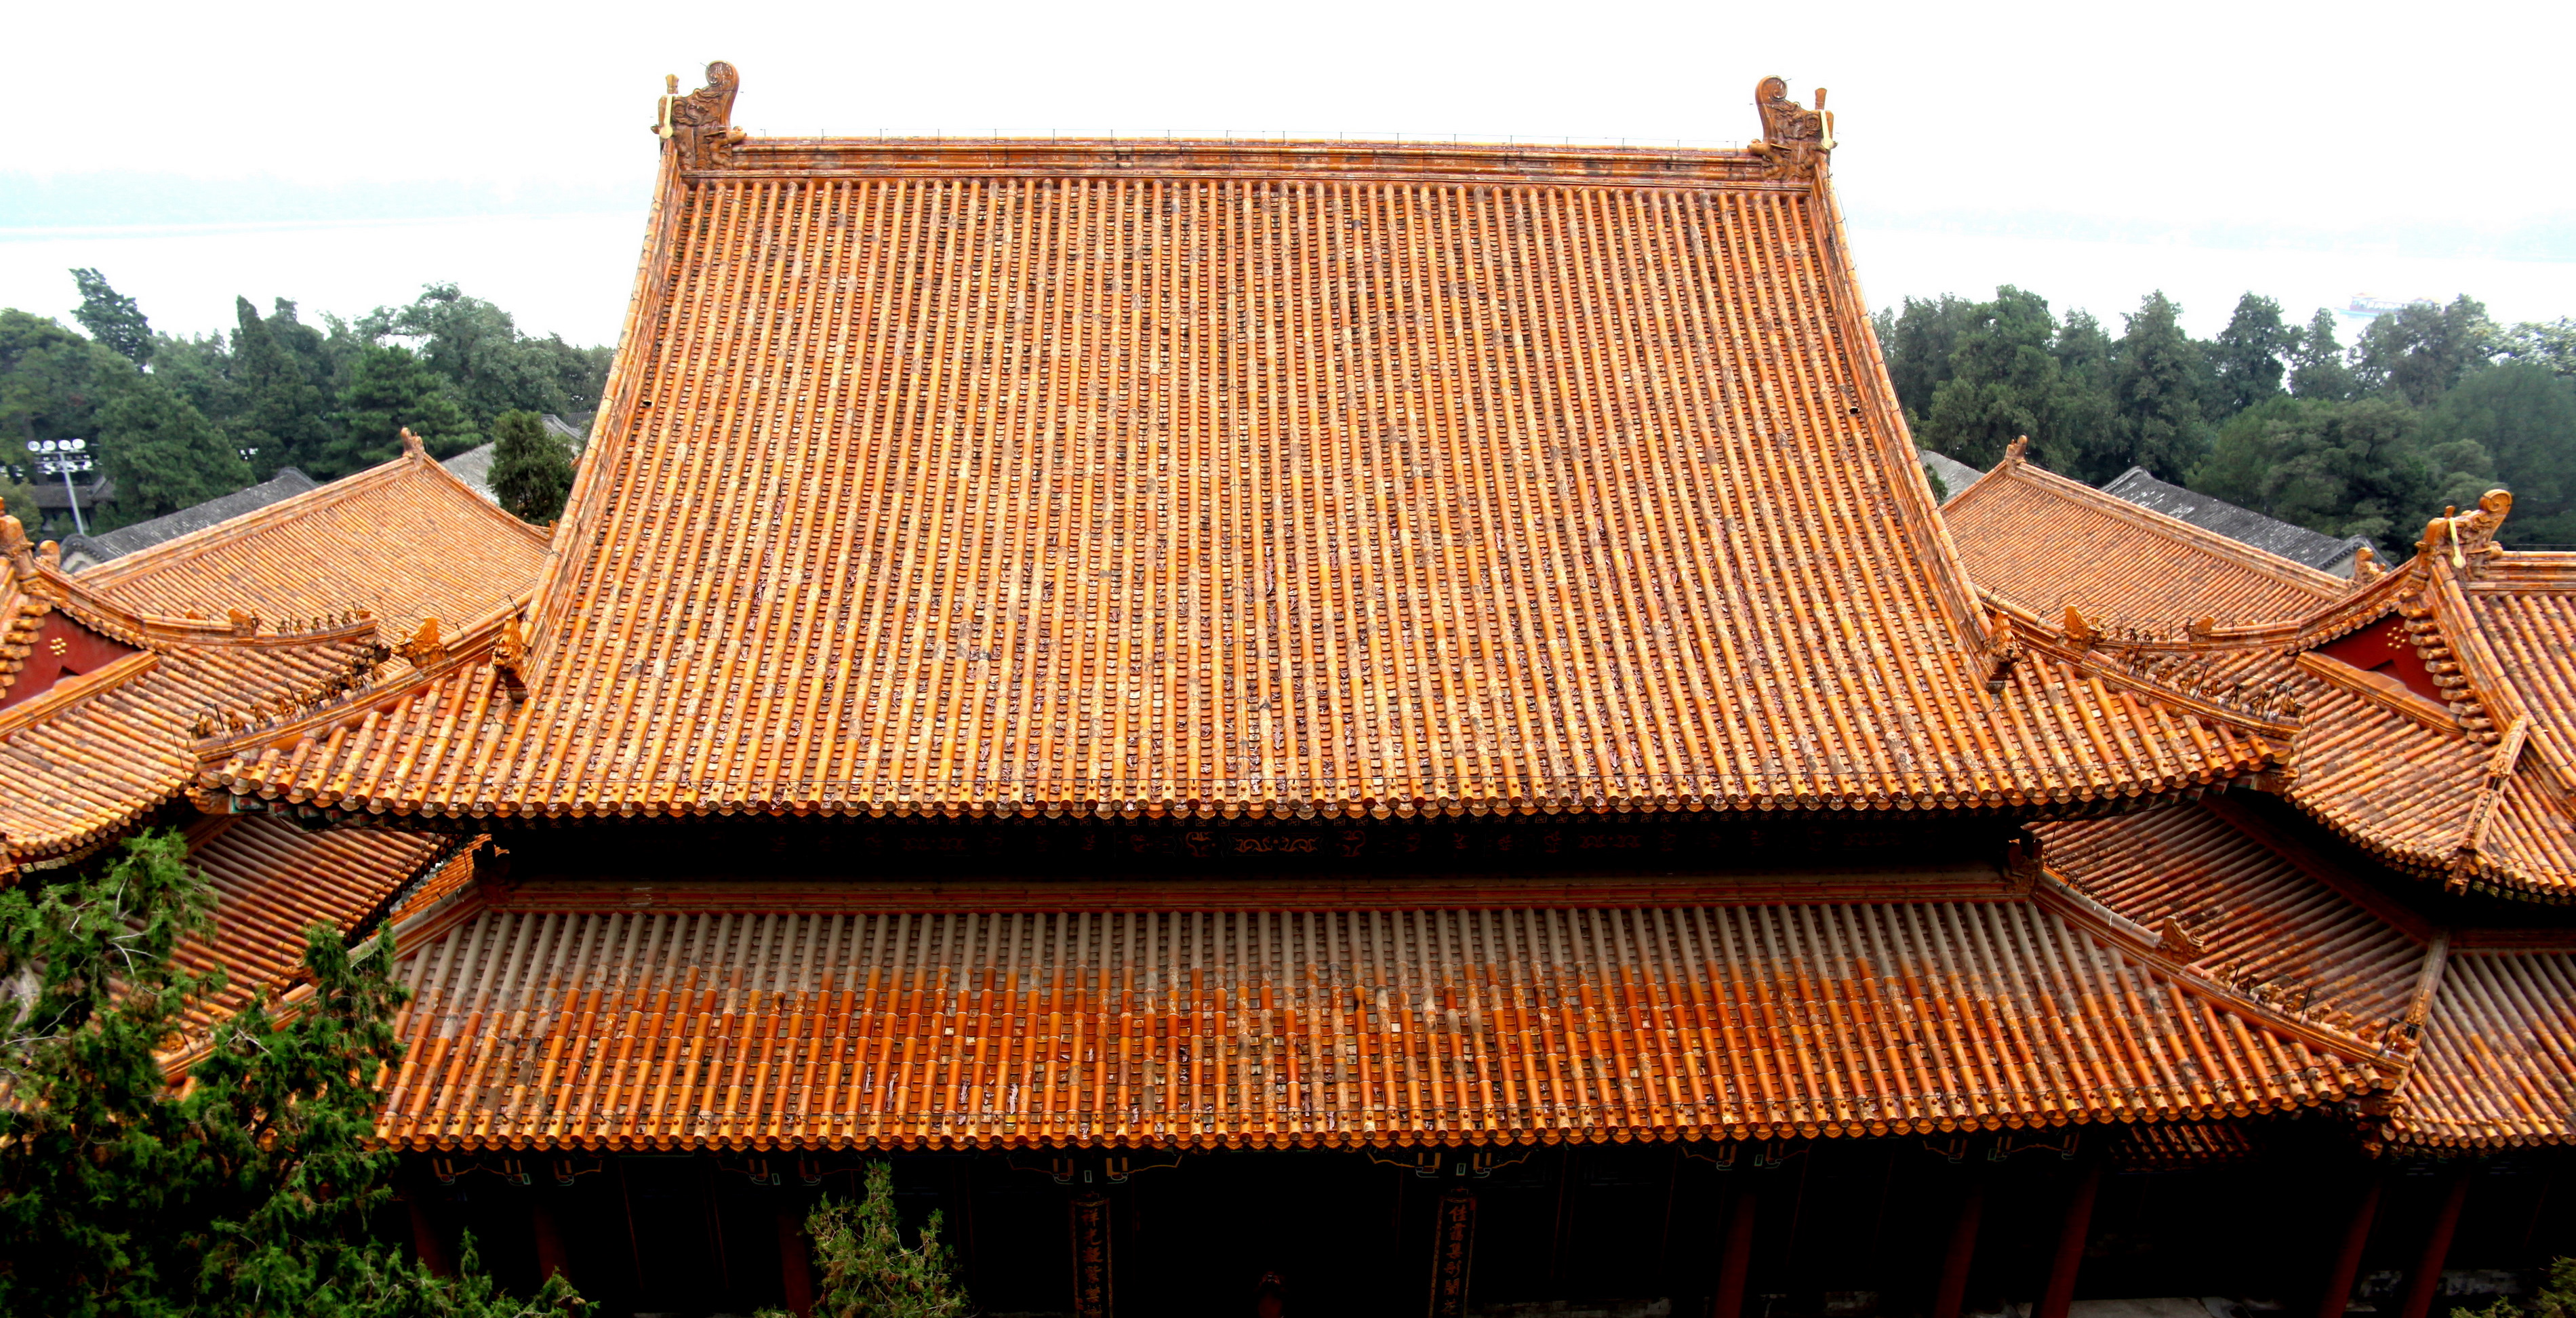 Chinese glazed ceramic roof tile 12 sb trading co ltd chinese glazed ceramic roof tile 12 dailygadgetfo Image collections